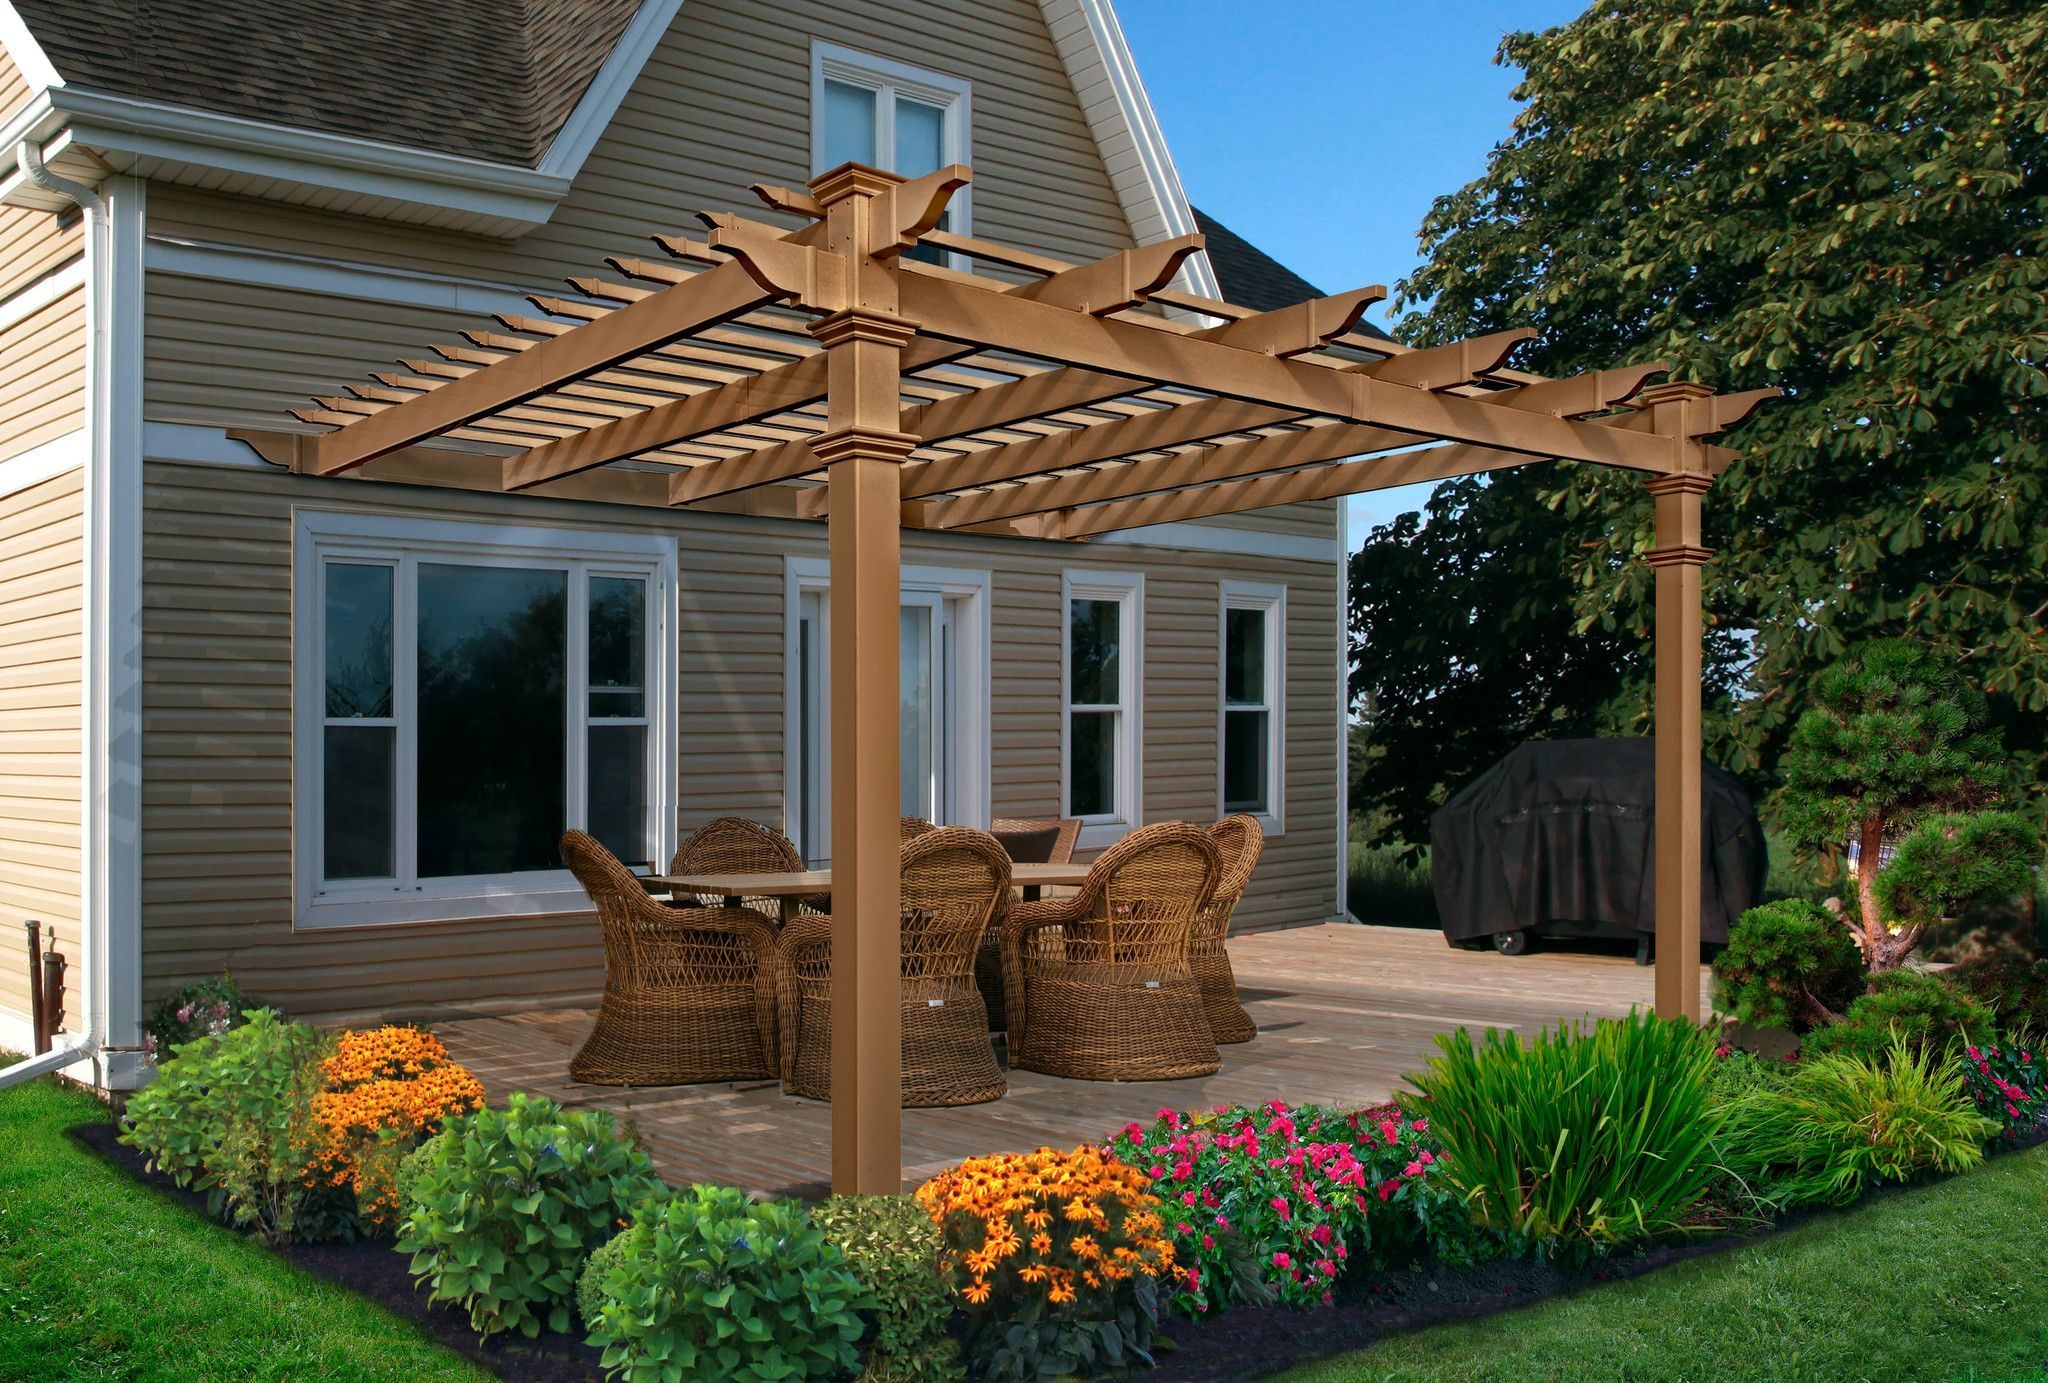 12x12 Kennedy Backyard Patio Designs Outdoor Pergola Patio Stones